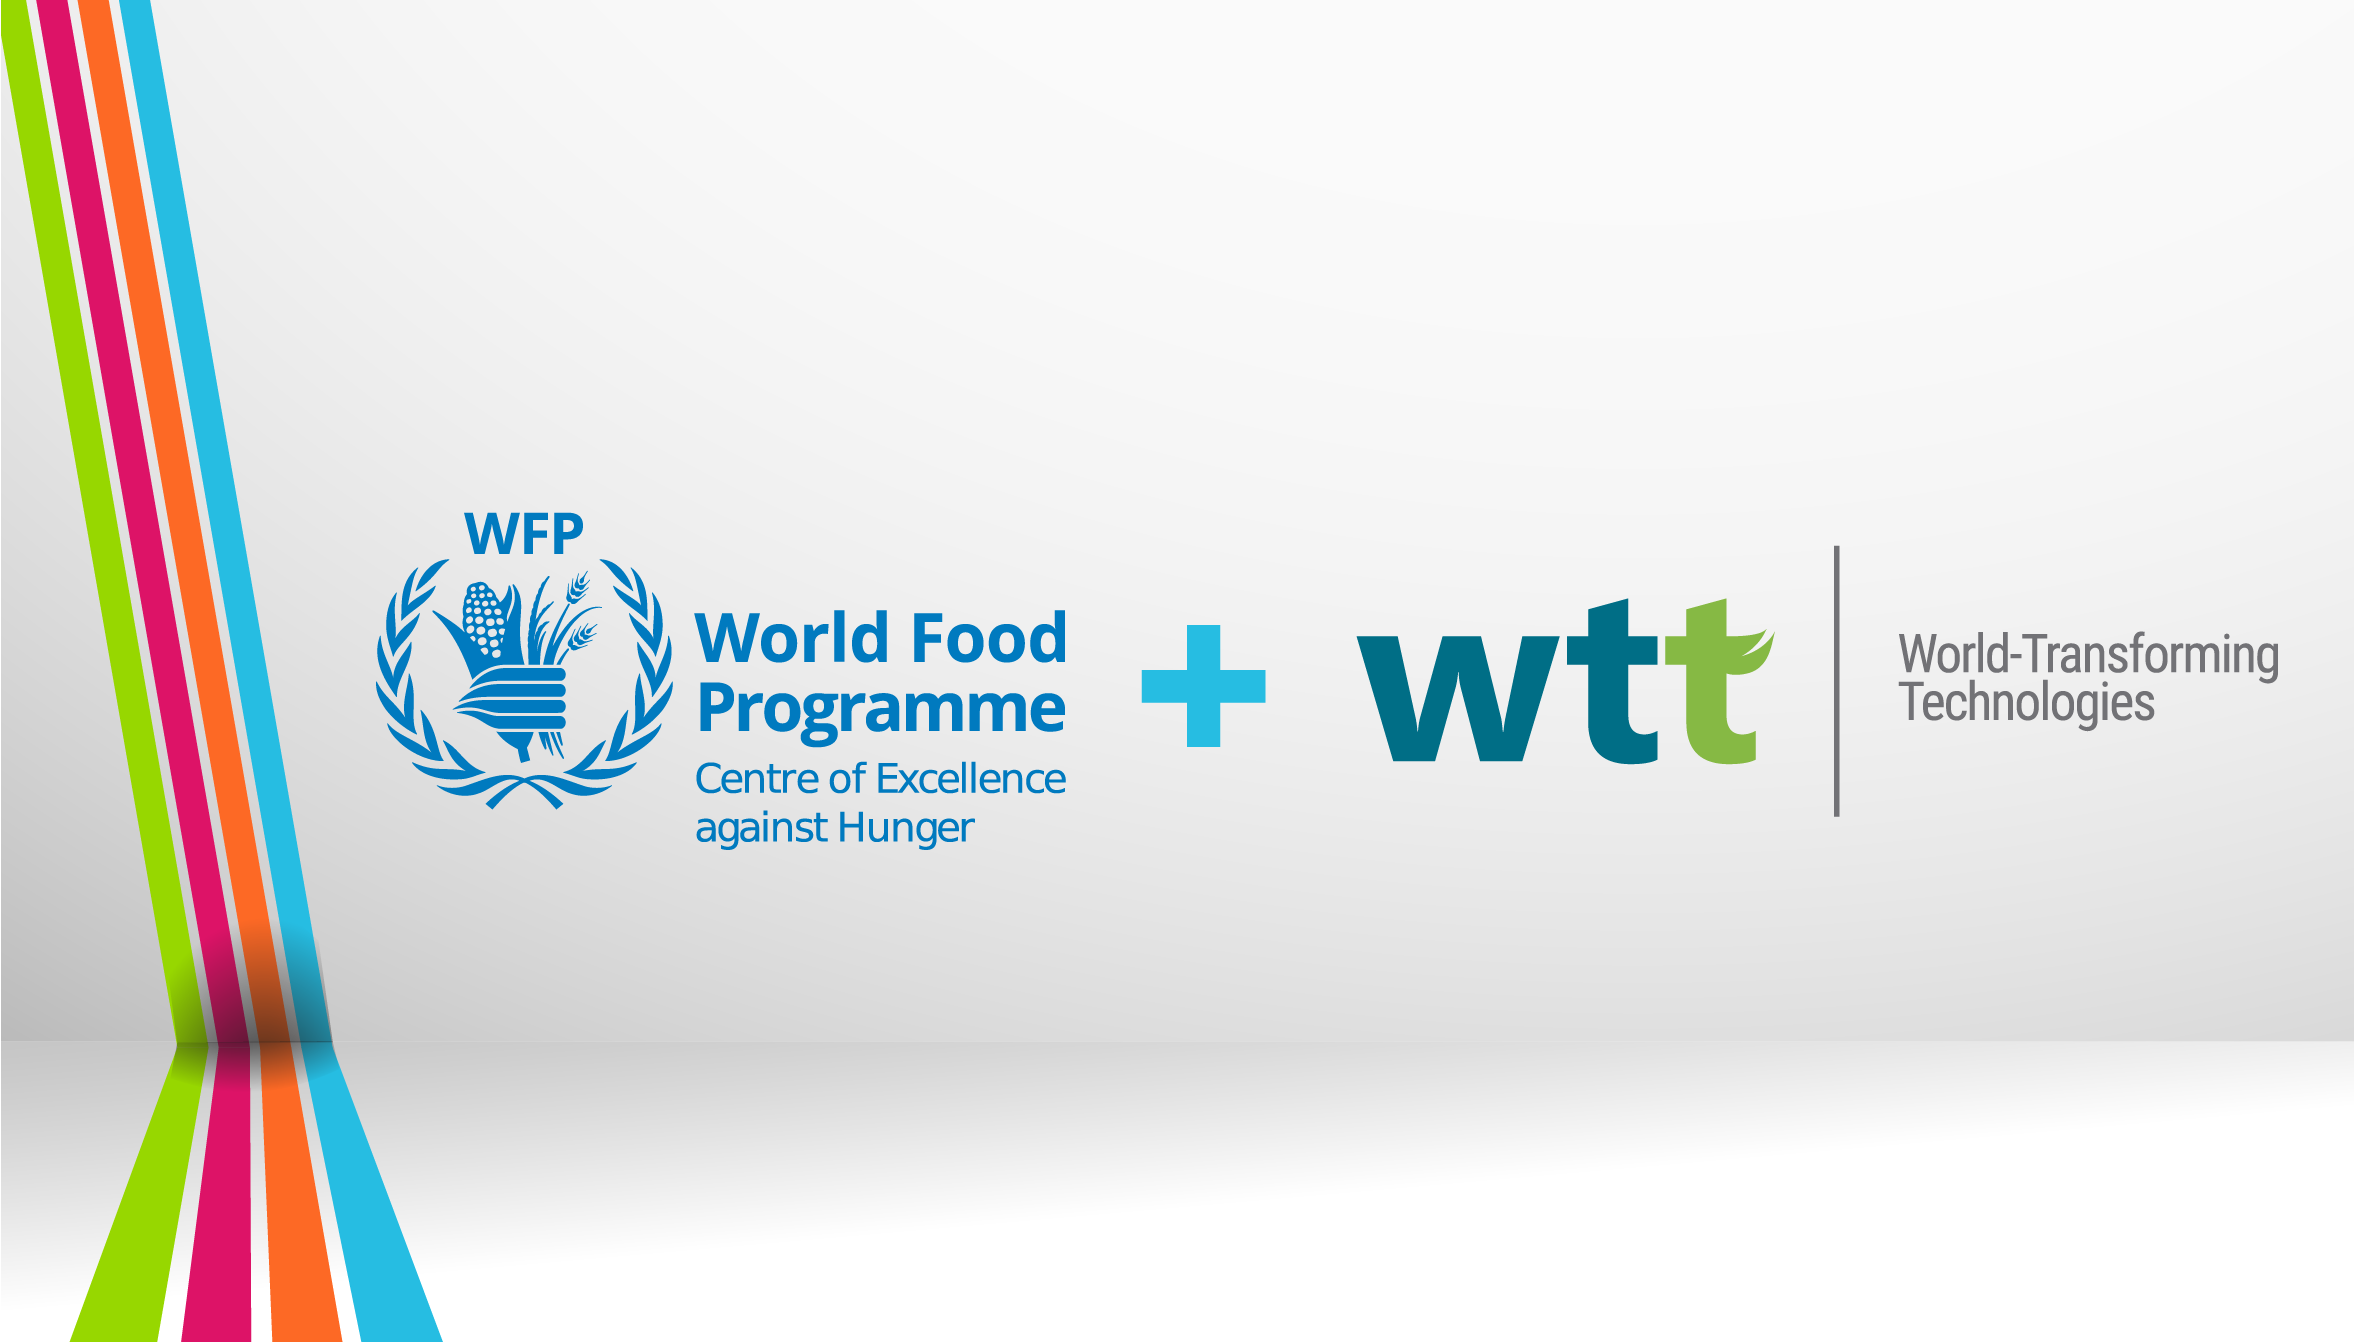 WFP Centre of Excellence in Brazil and WTT form partnership to promote innovation